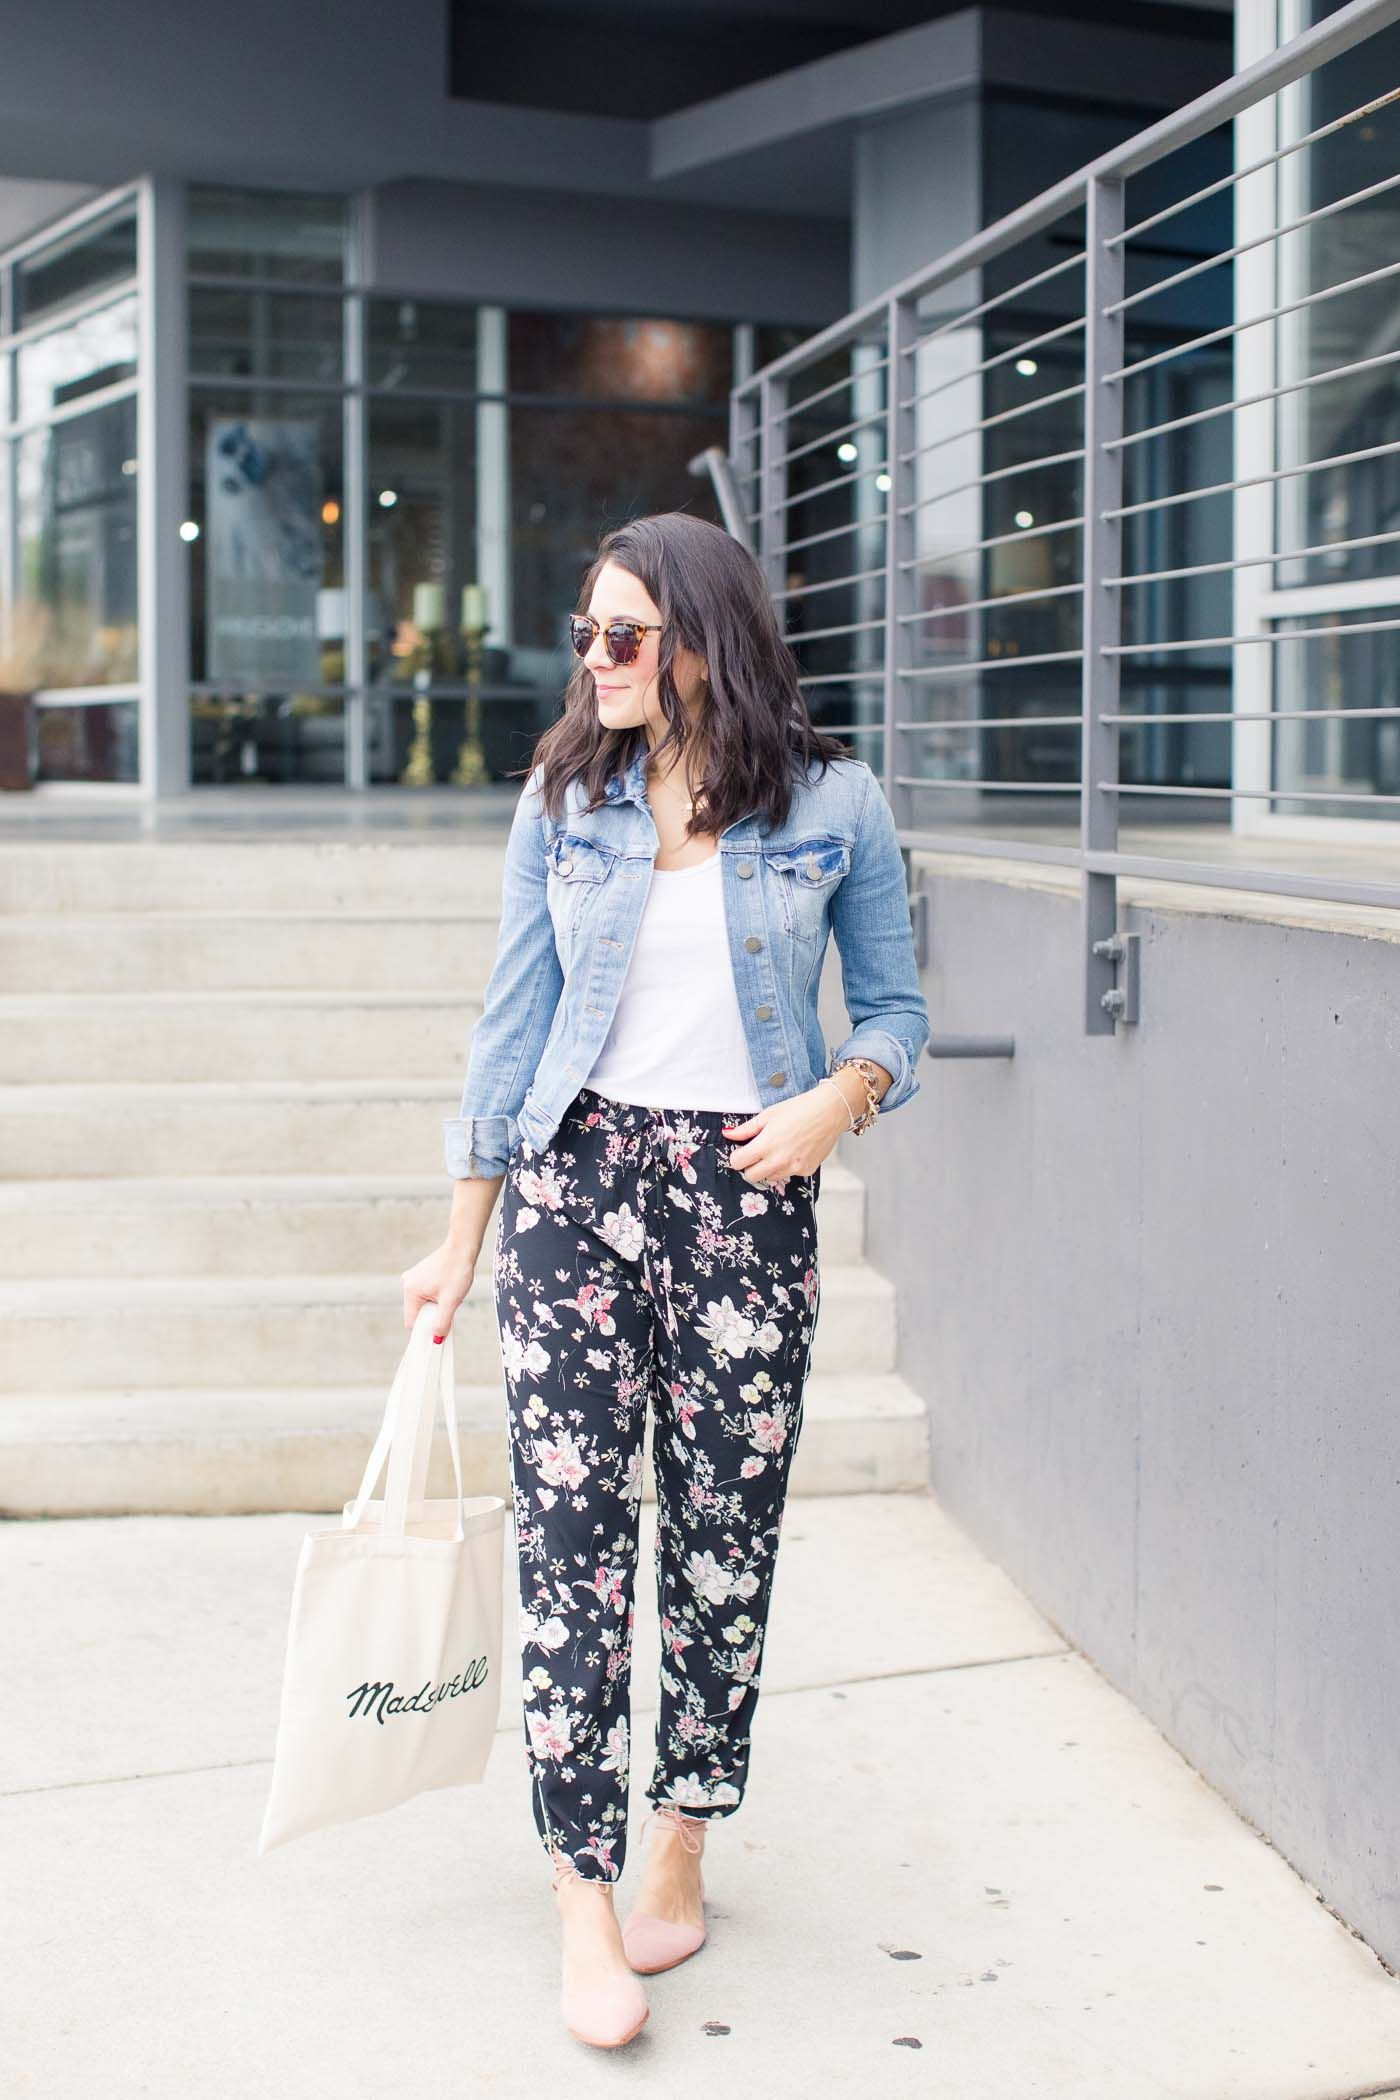 How To Style Floral Pants